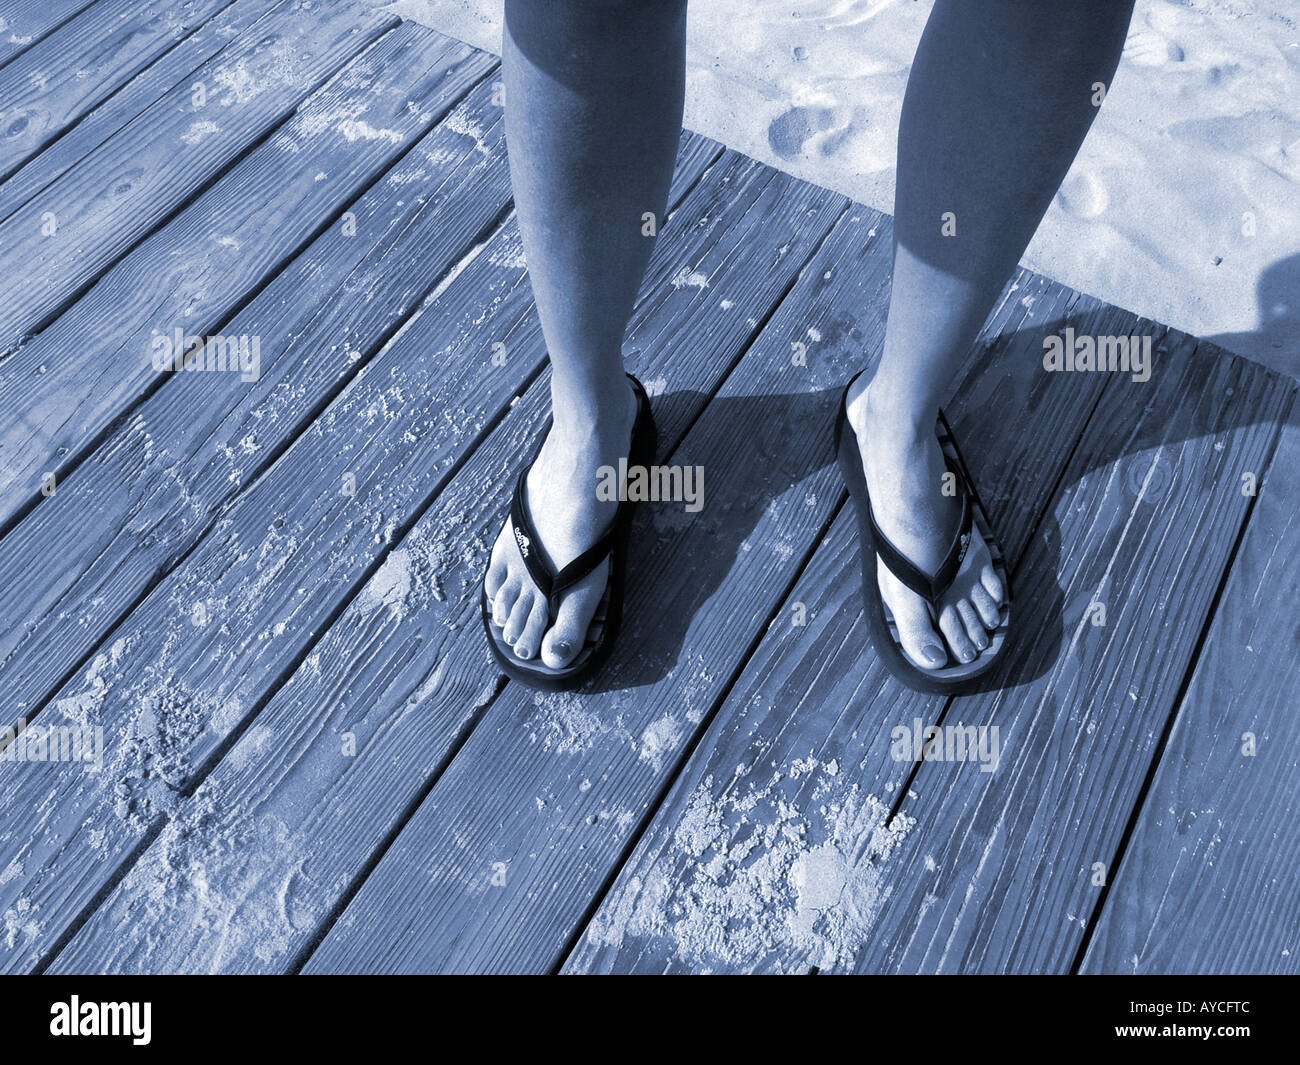 c35855bafcc363 Woman s Feet in Flip Flop Sandals on Boardwalk at Beach Stock Photo ...